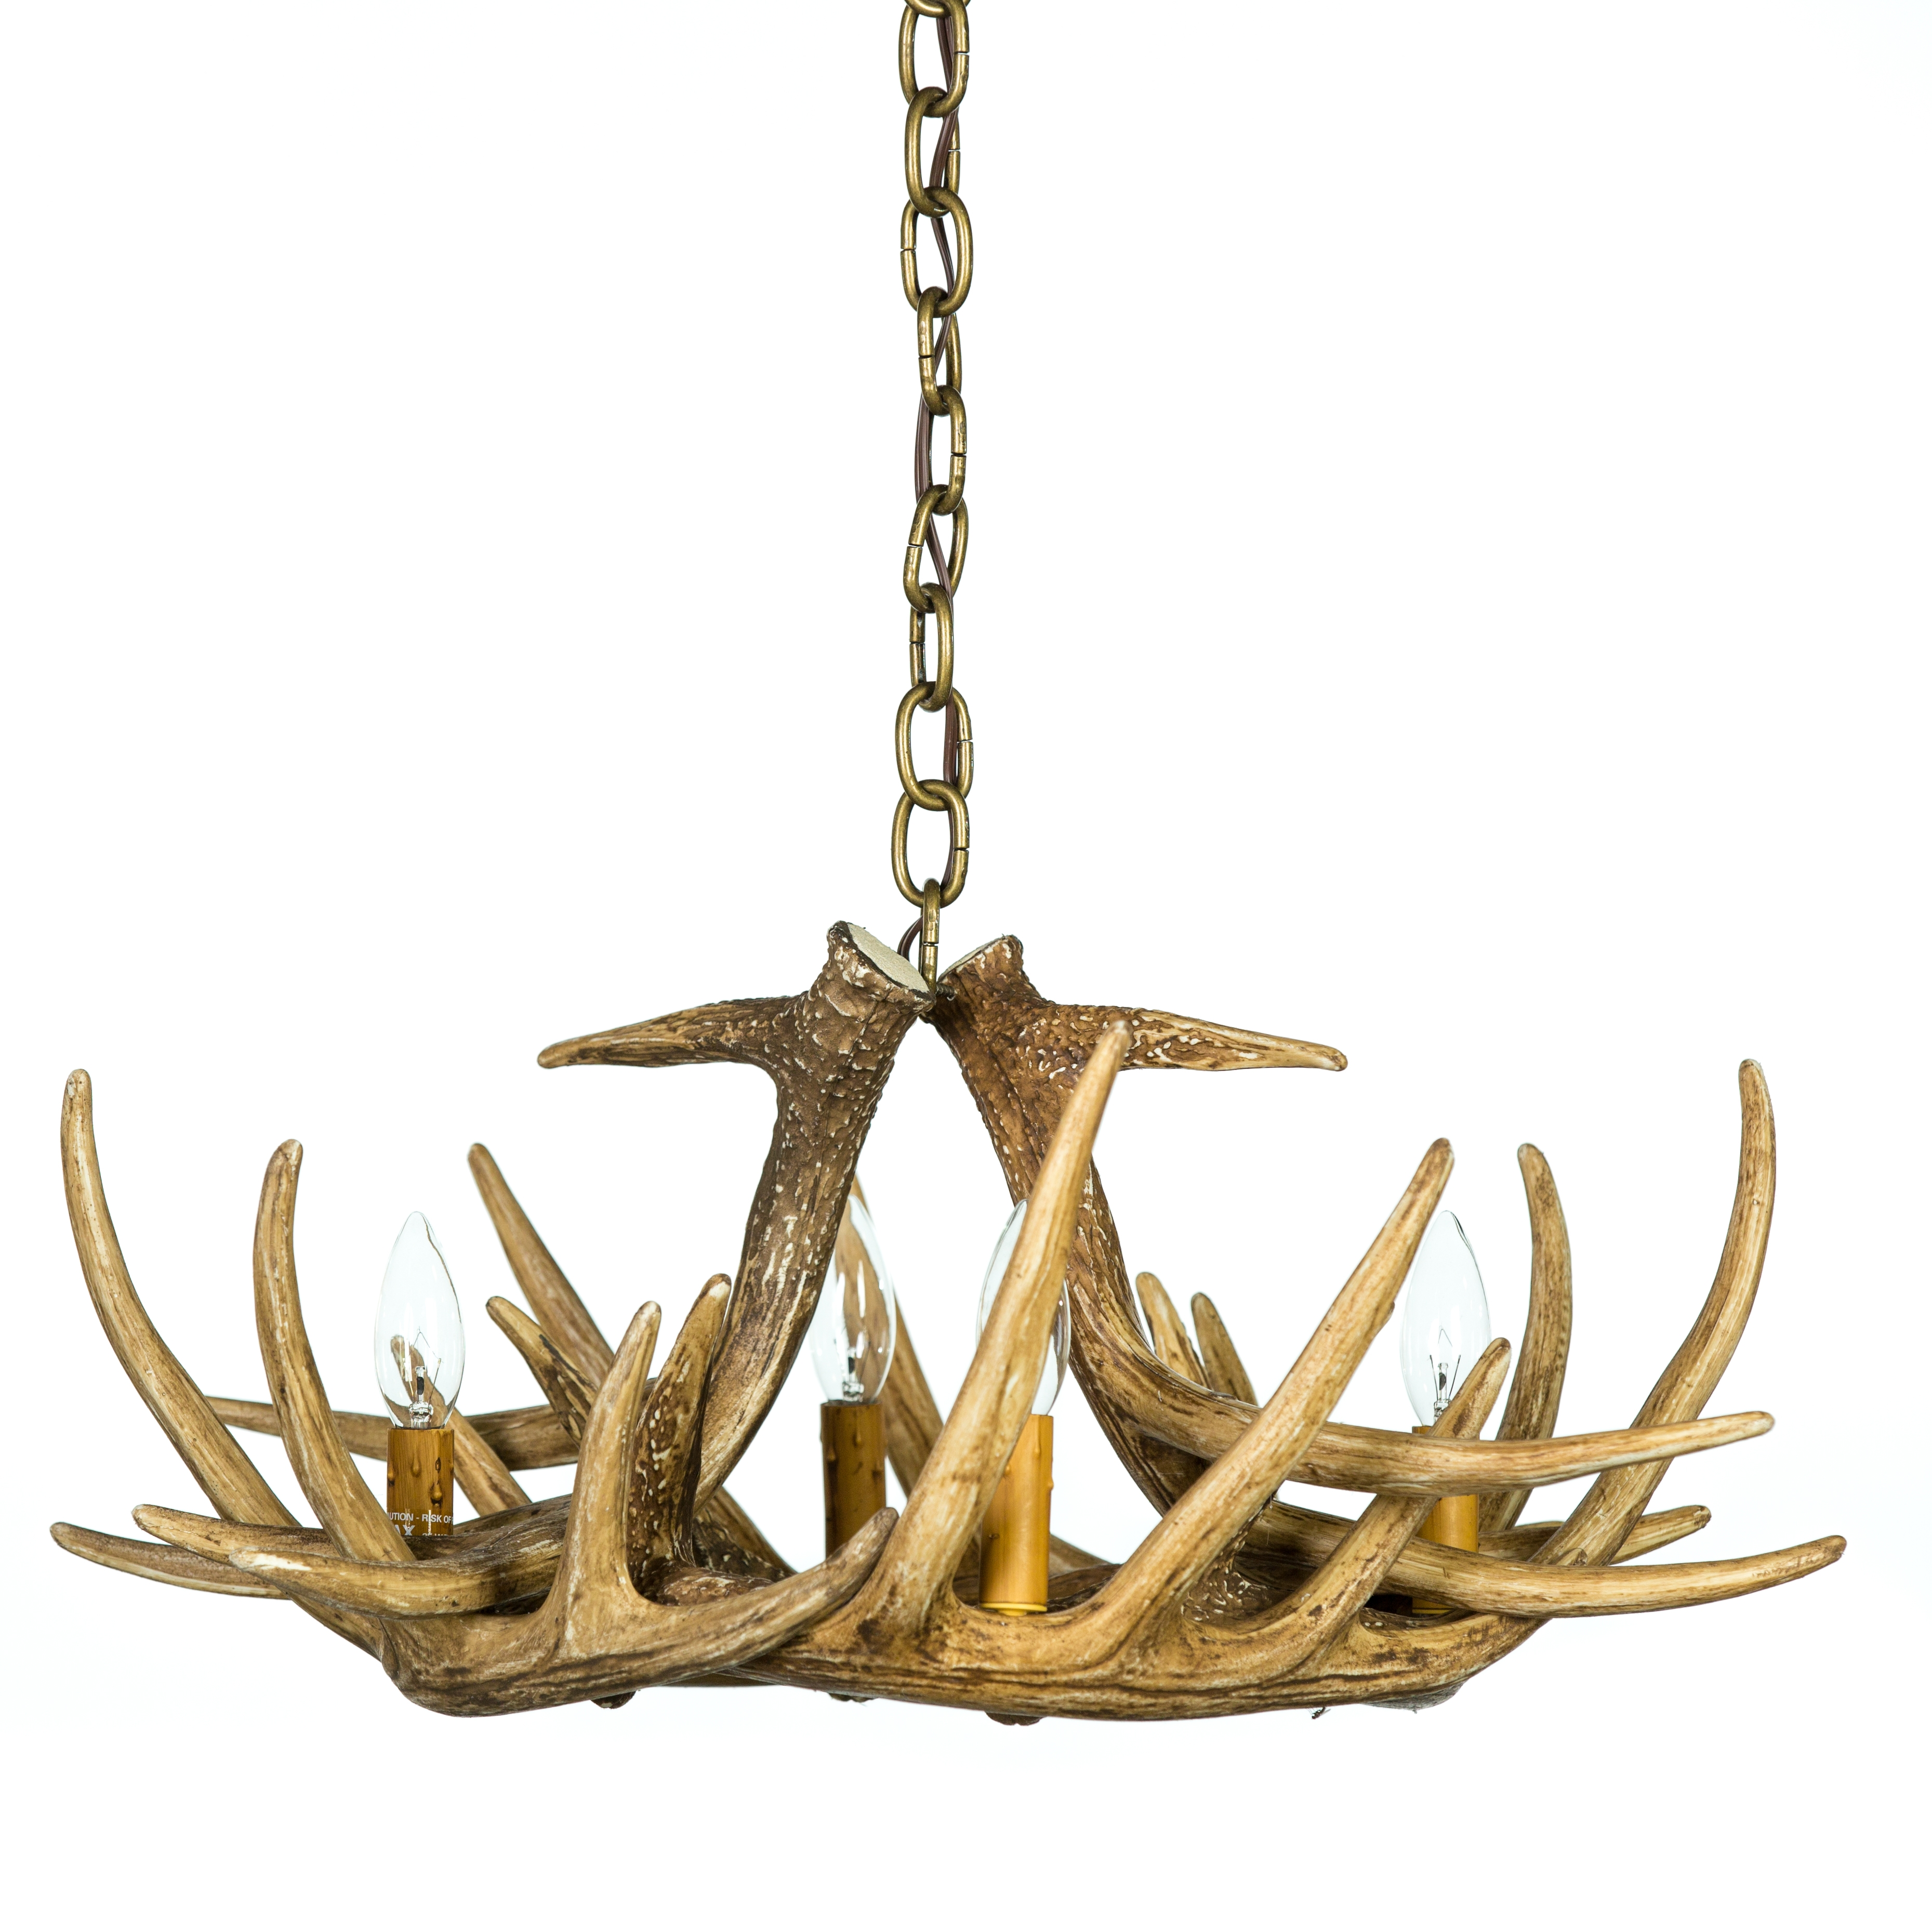 Antler Chandeliers Cast Horn Designs Intended For Antler Chandelier (View 9 of 15)